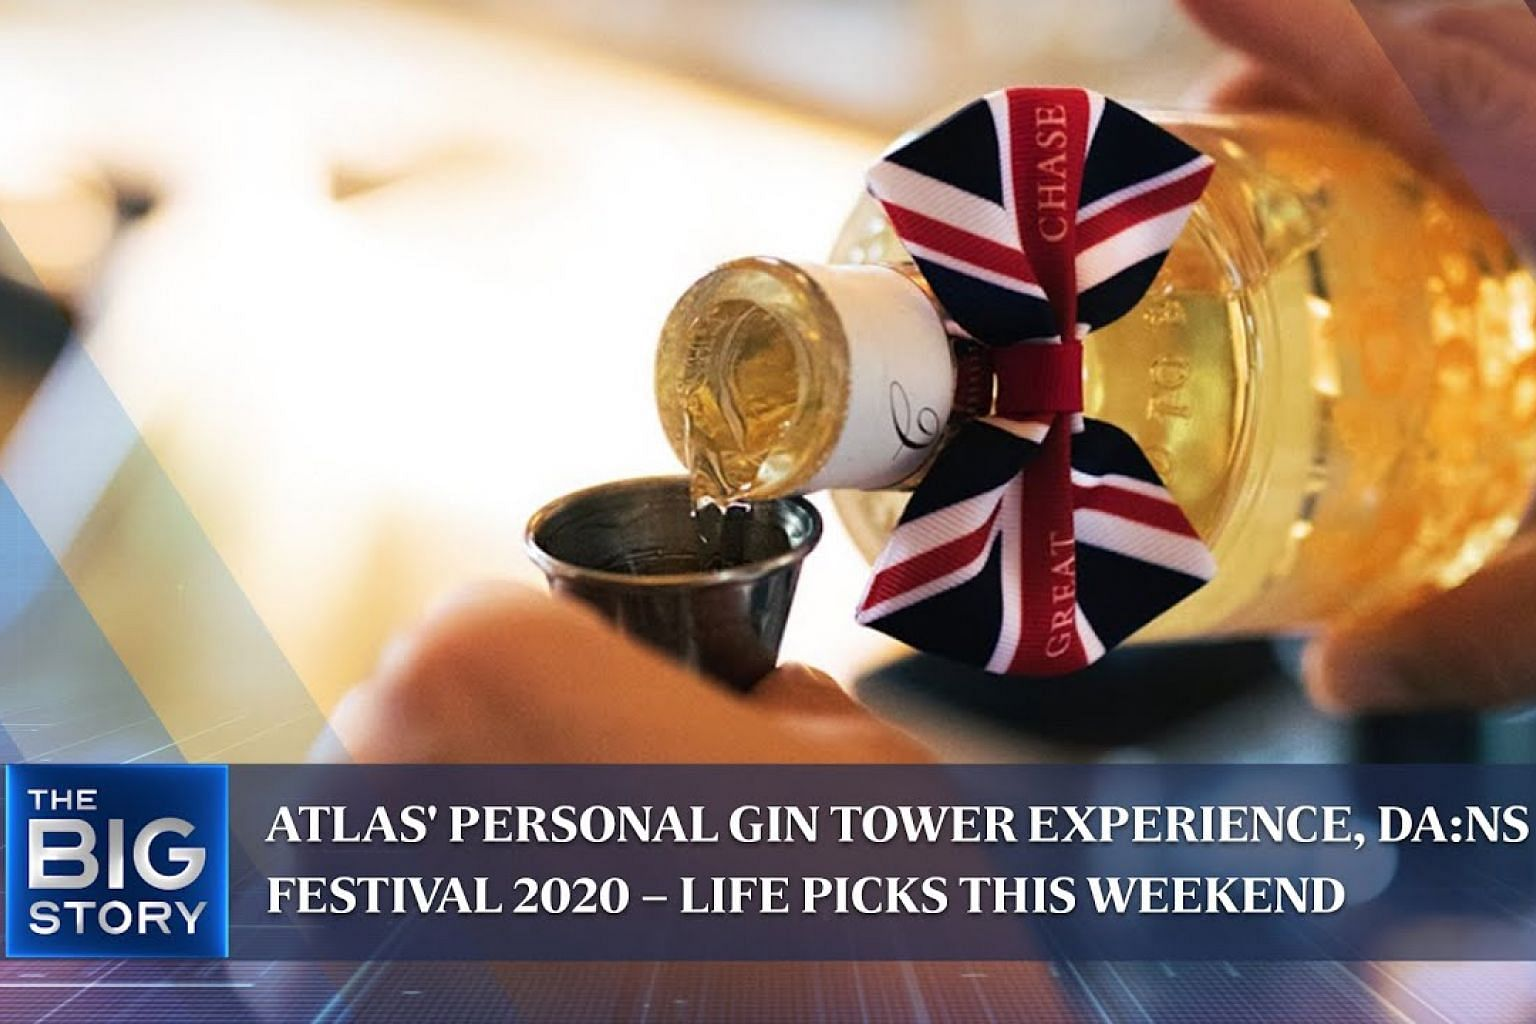 Atlas Bar's gin tower experience | Da:ns Festival 2020 | Weekend Life Picks | THE BIG STORY